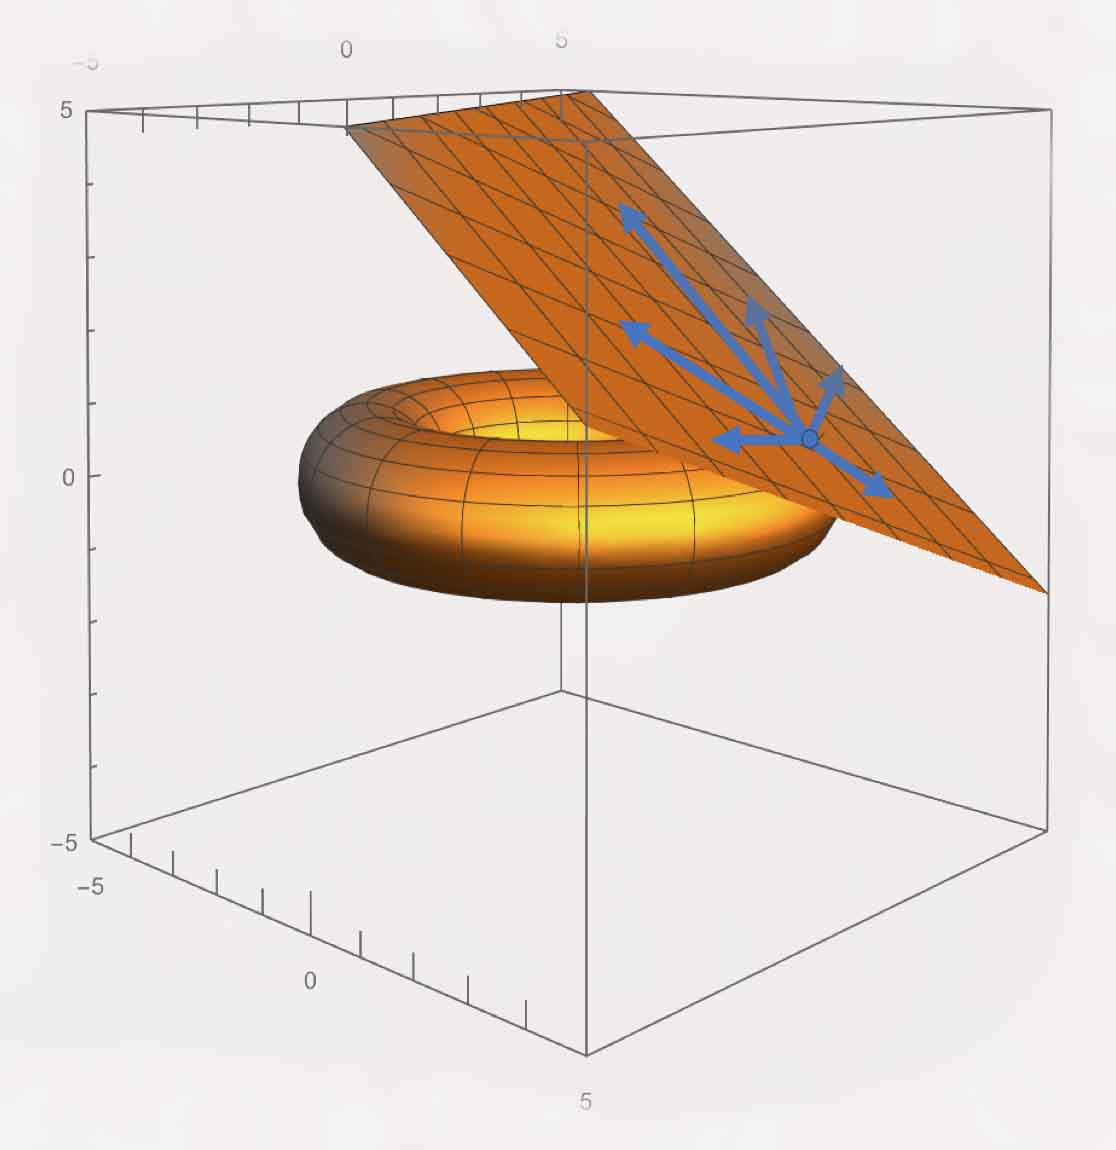 depiction of tangent plane over a sphere